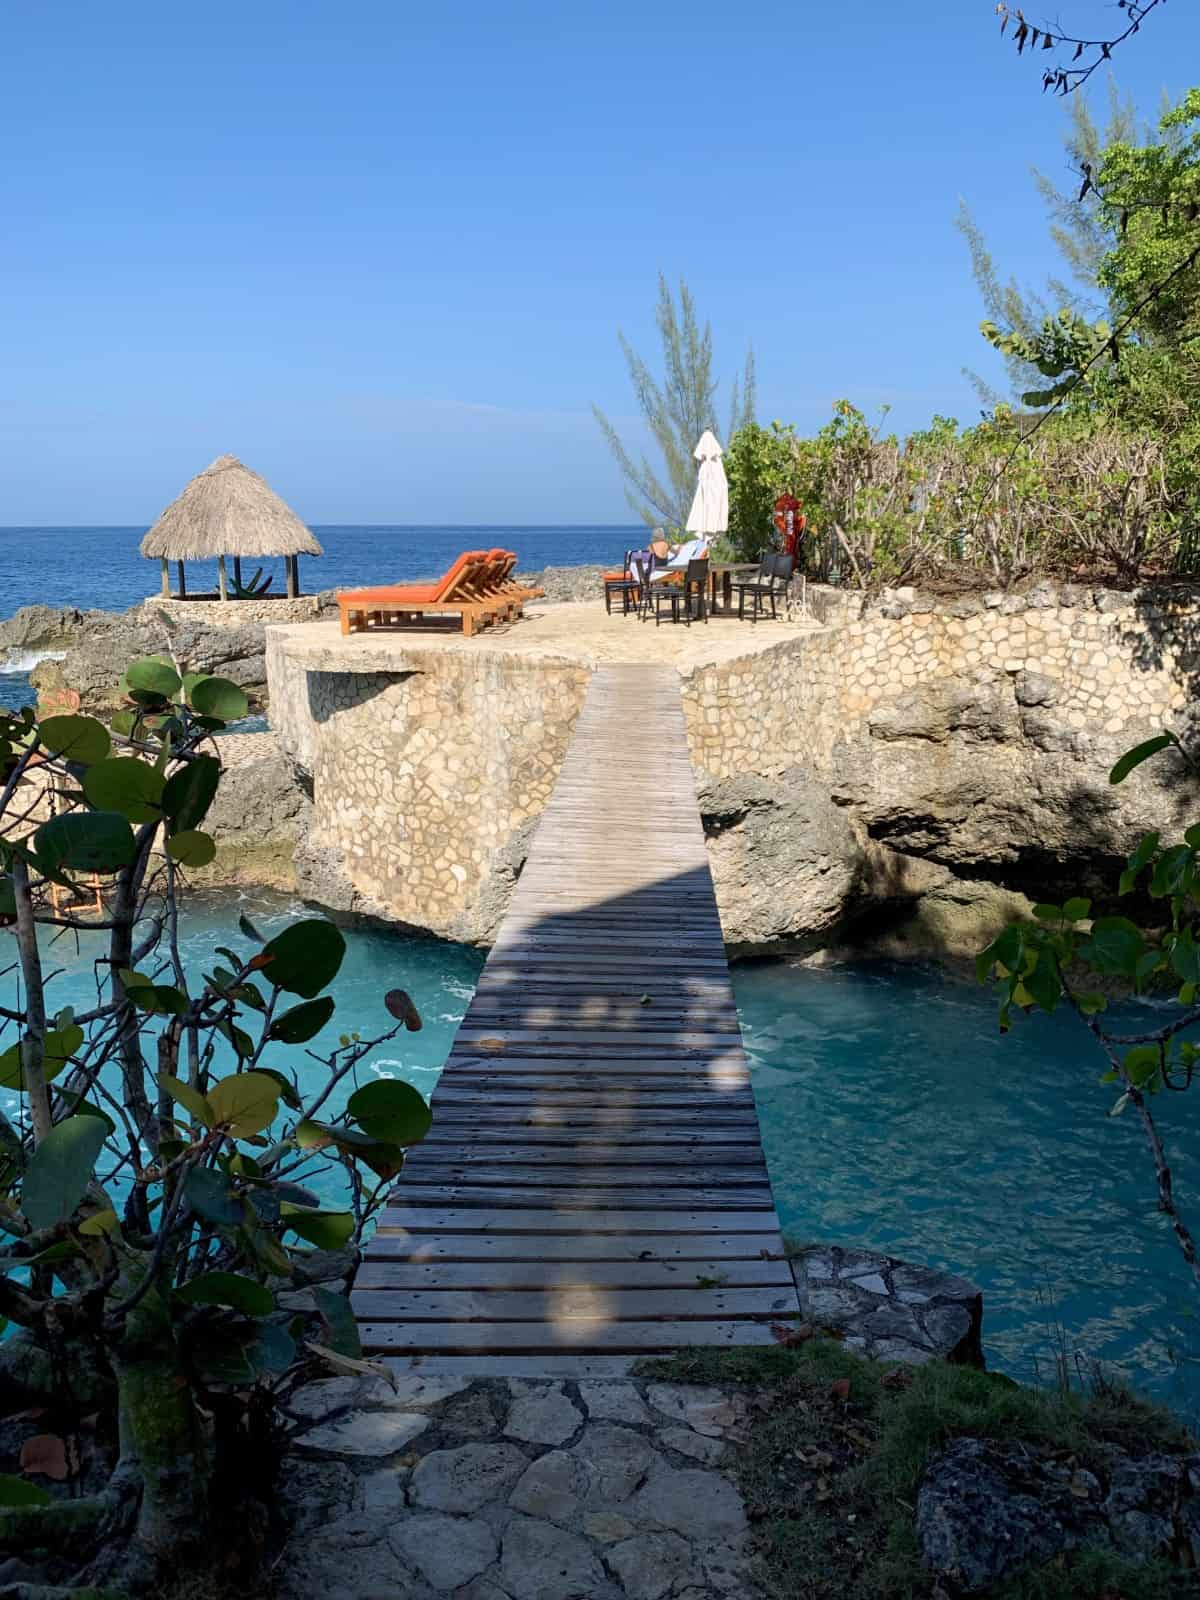 Planning a Chill Weekend in Negril, Jamaica | I stayed at the amazing Tensing Pen hotel on Negril's West End cliffs...though I was only here a few days, it was a relaxing, lovely little vacation. Here are my recommendations on what to do in Negril, where to eat and drink, where to stay, & more! #caribbean #negril #jamaica #luxury #beach #vacay